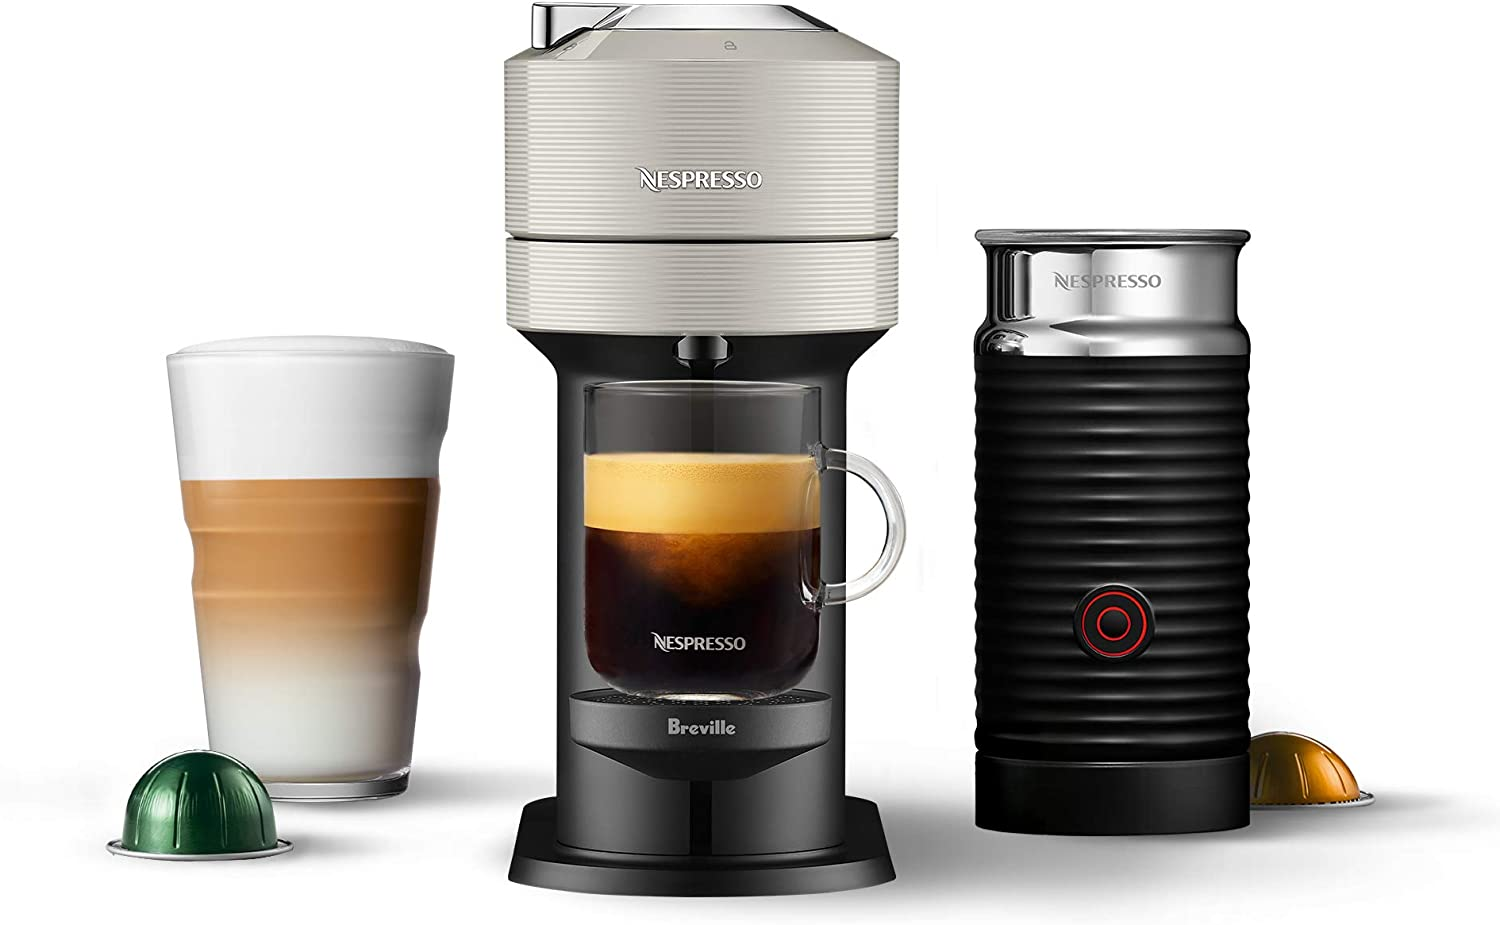 Best home espresso machine under 200 -Breville-Nespresso USA BNV550GRY1BUC1 Vertuo Next